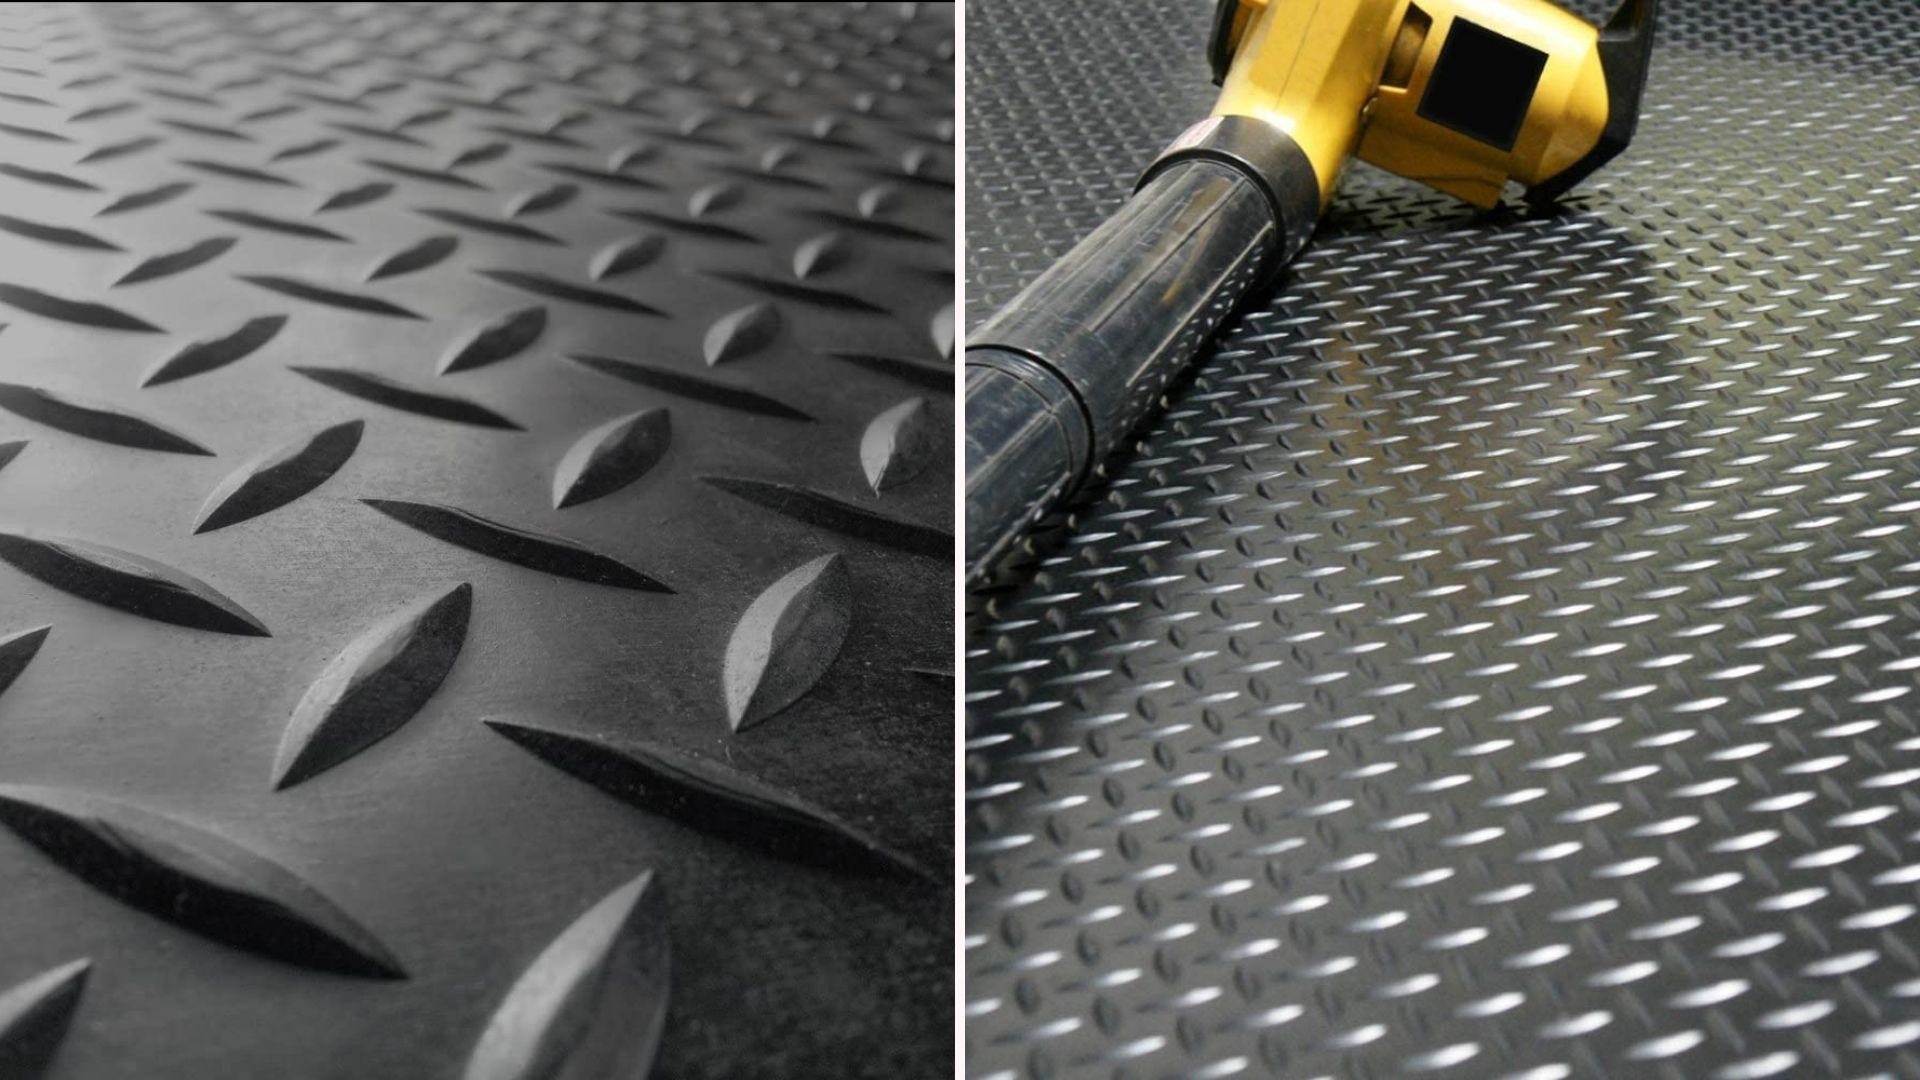 A rubber garage mat with a leaf blower sitting on top of it.